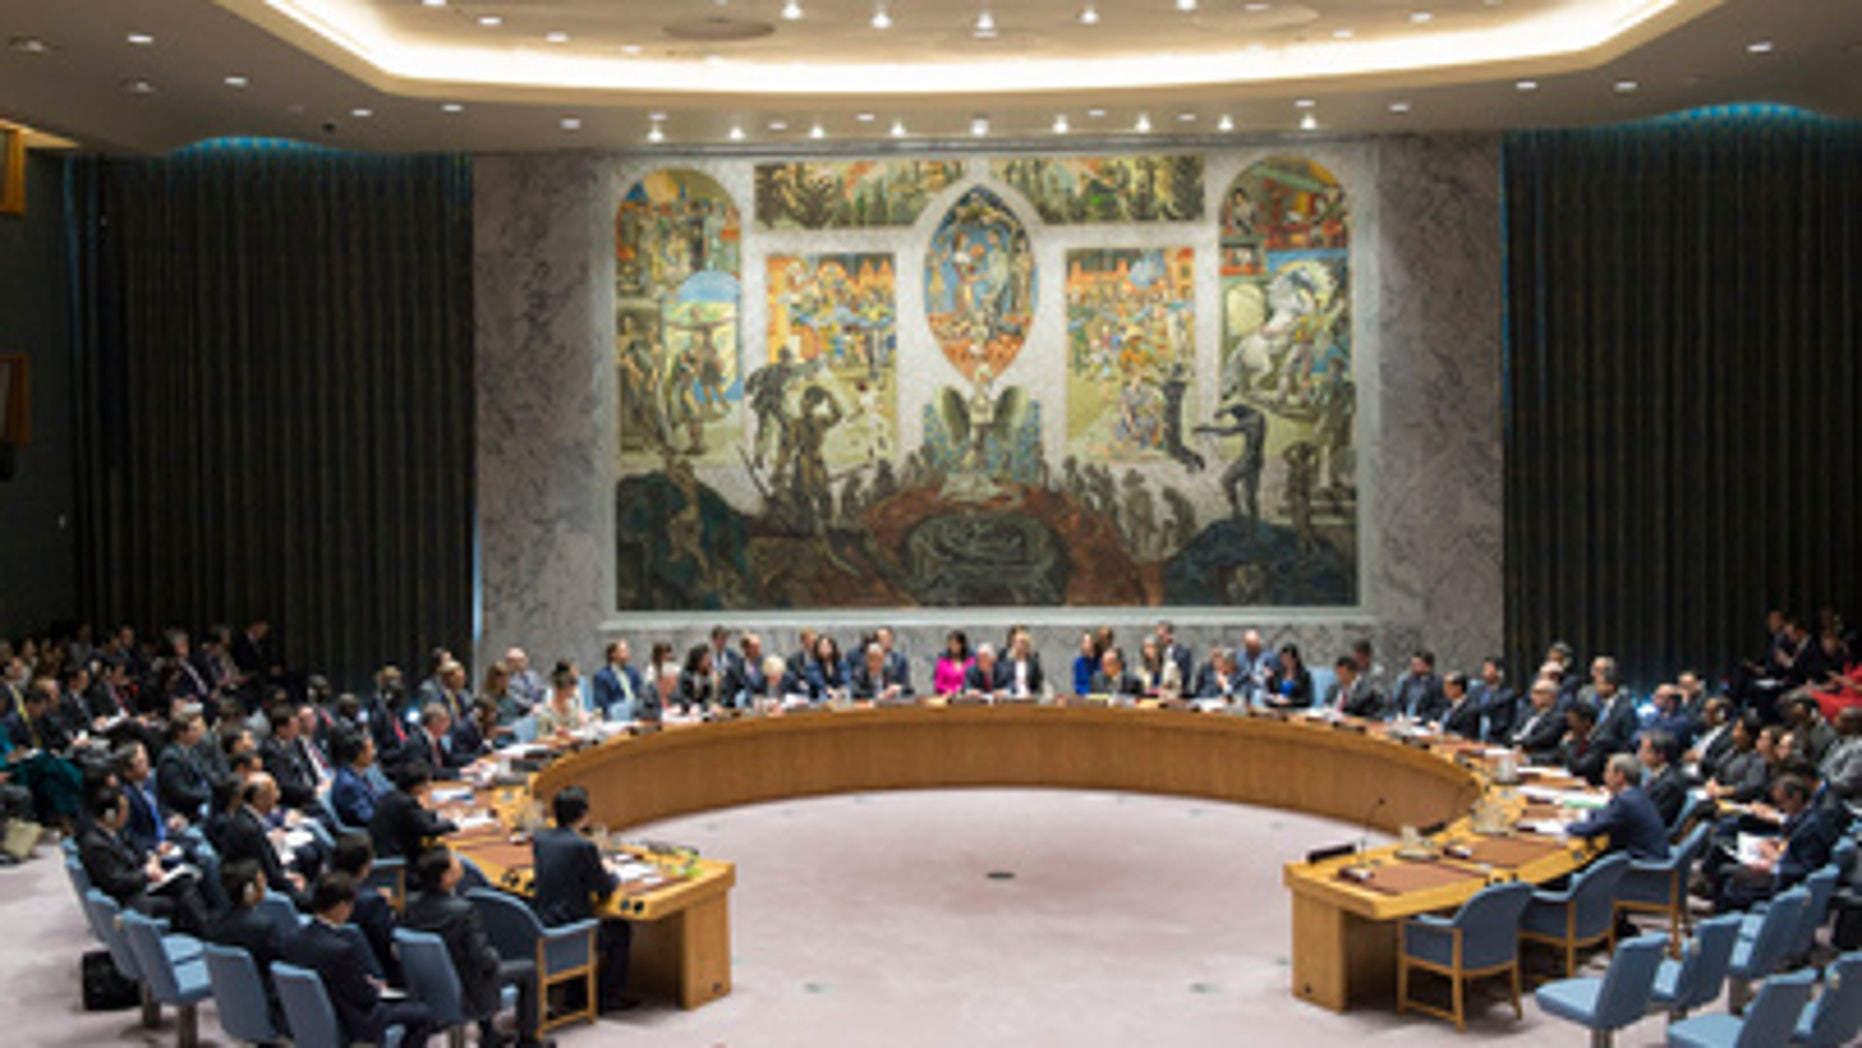 The United Nations Security Council holds meeting on the nuclear weapon and ballistic missile programs of the Democratic People's Republic of Korea in New York on April 28, 2017.